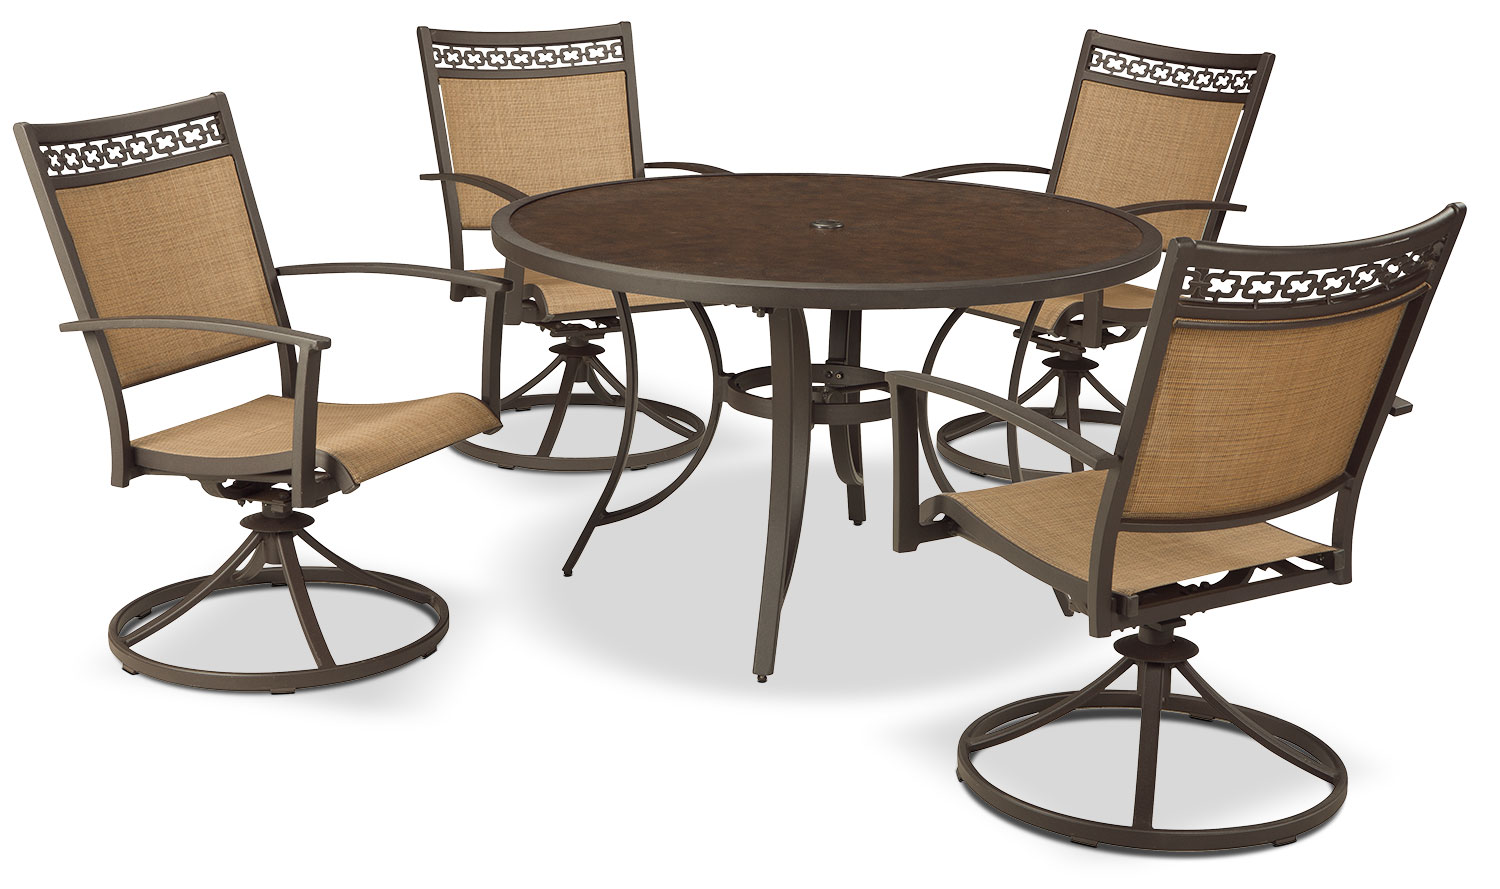 Carmadelia 5-Piece Patio Dining Set with Swivel Chairs